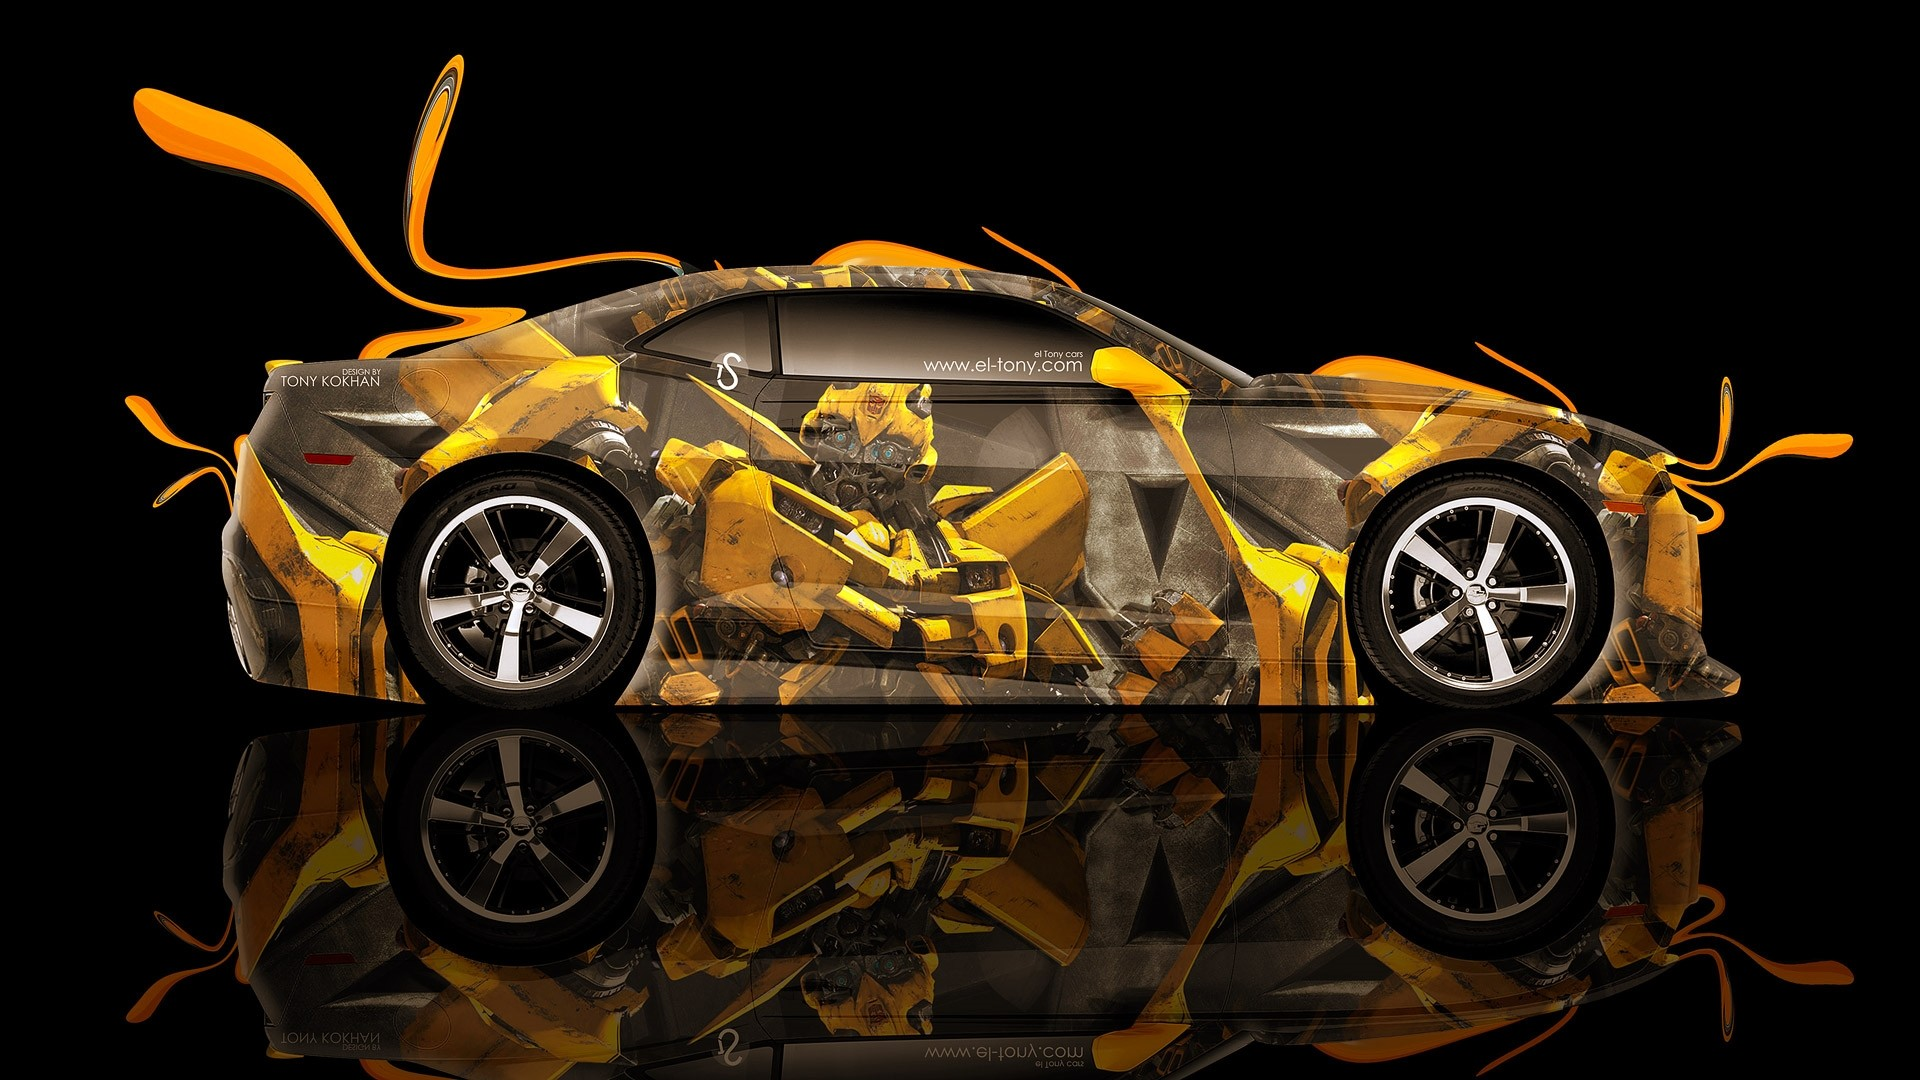 1920x1080 Transformers Bumblebee Car Wallpaper Desktop Free Download